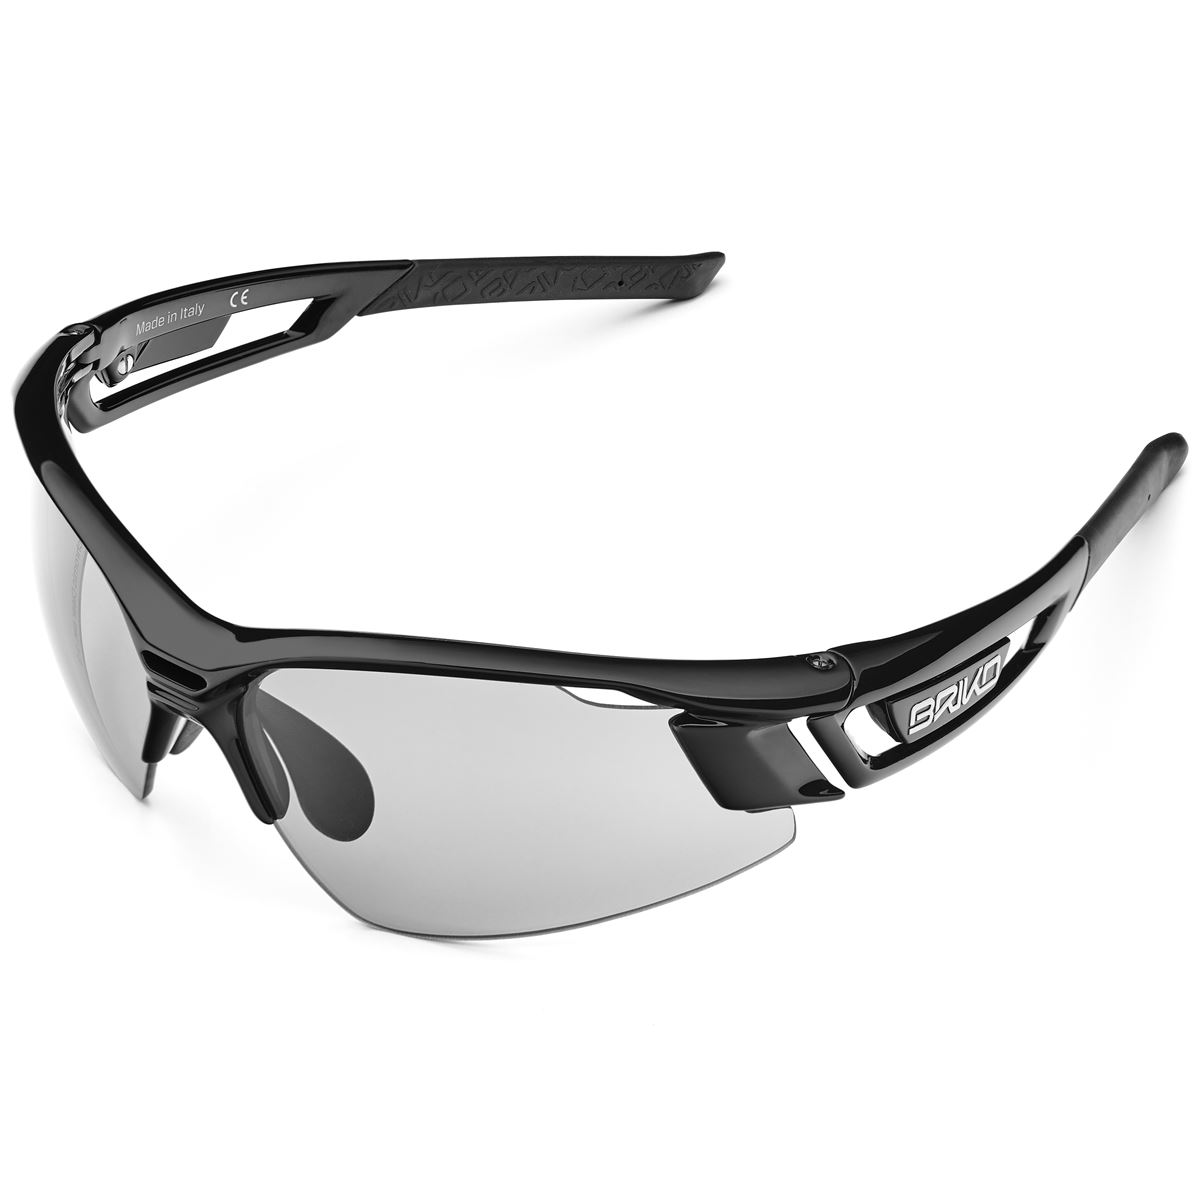 Briko GLASSES URAGANO PHOTO Man Woman CYCLING MOUNTAIN BIKE Sunglasses